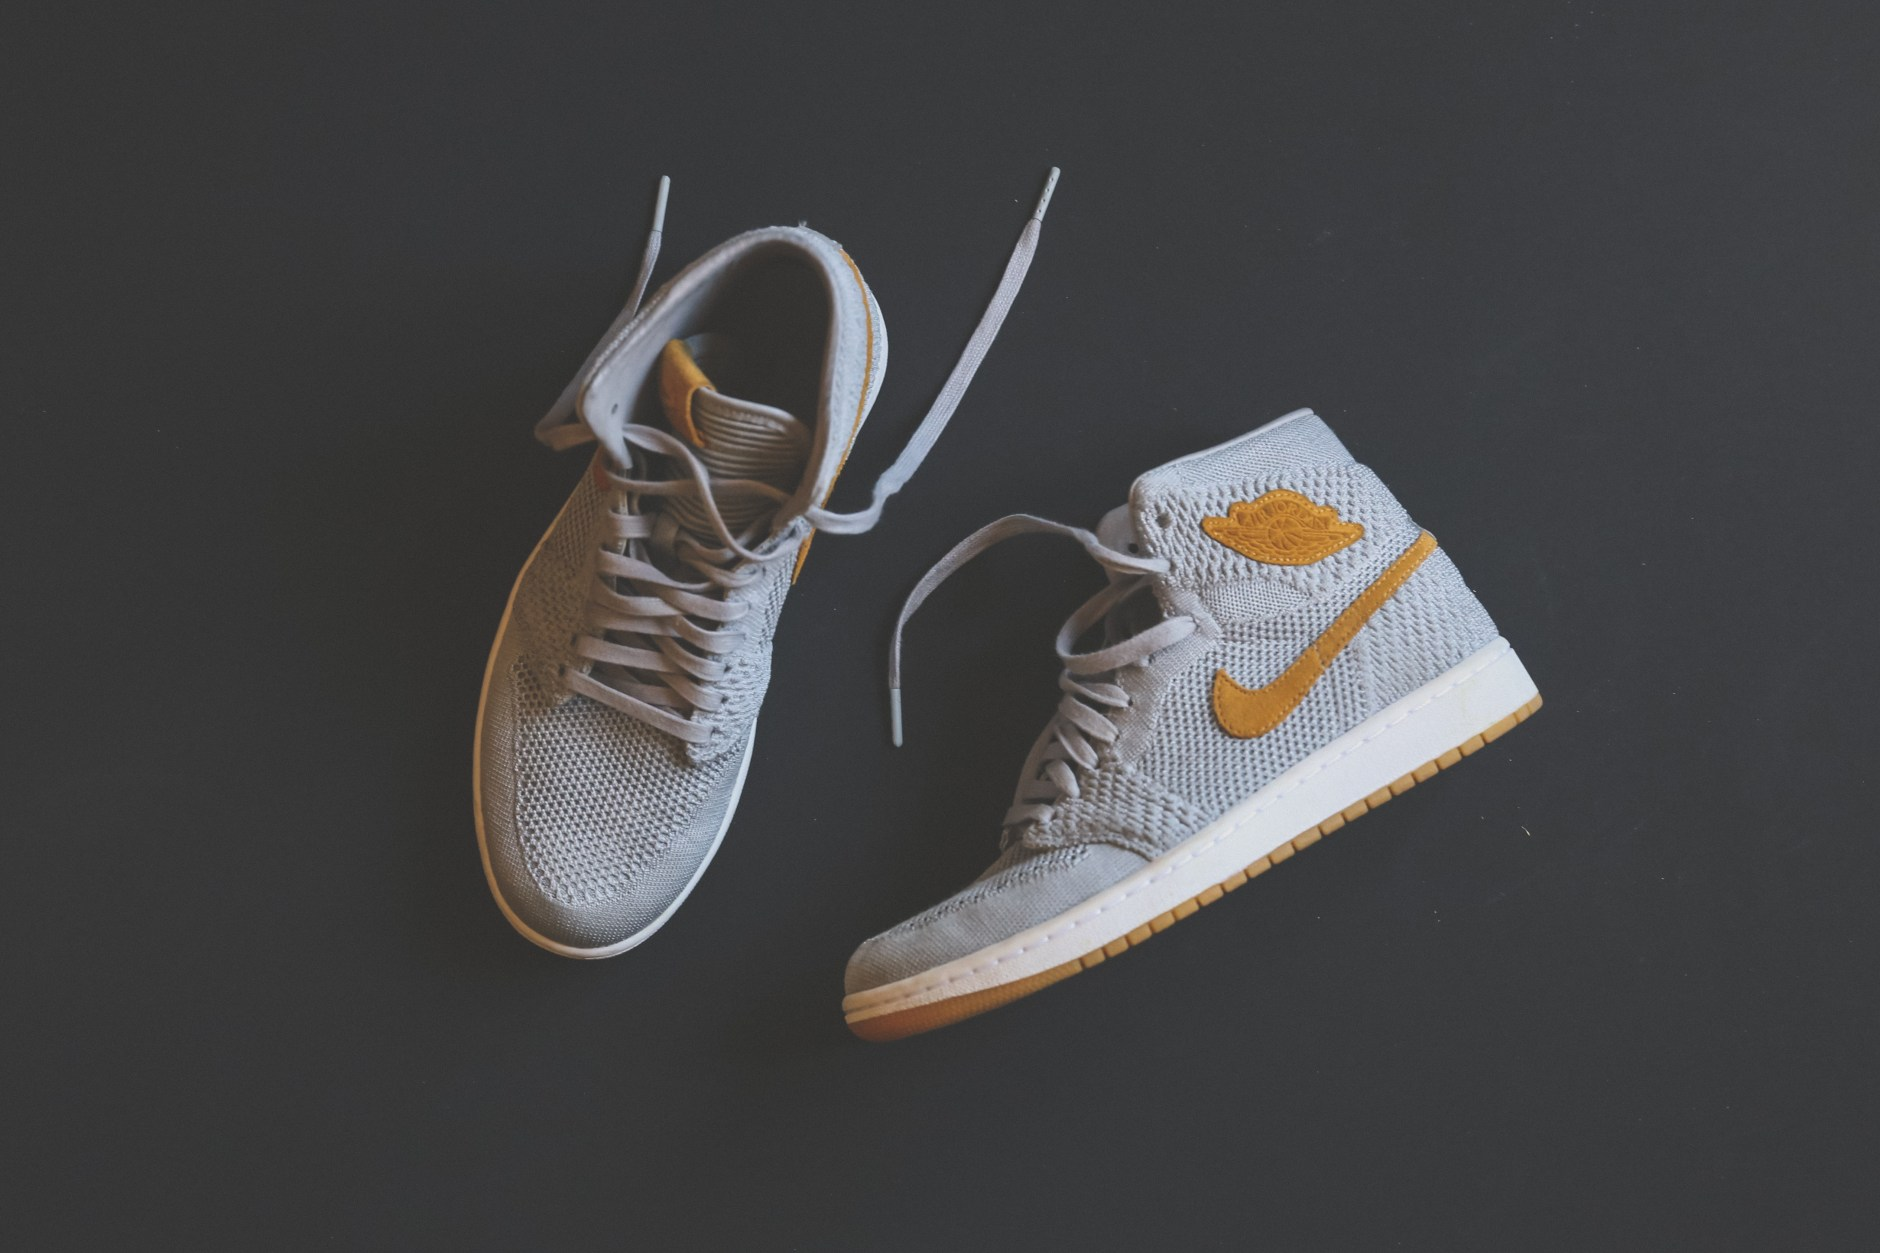 pair of nike shoes